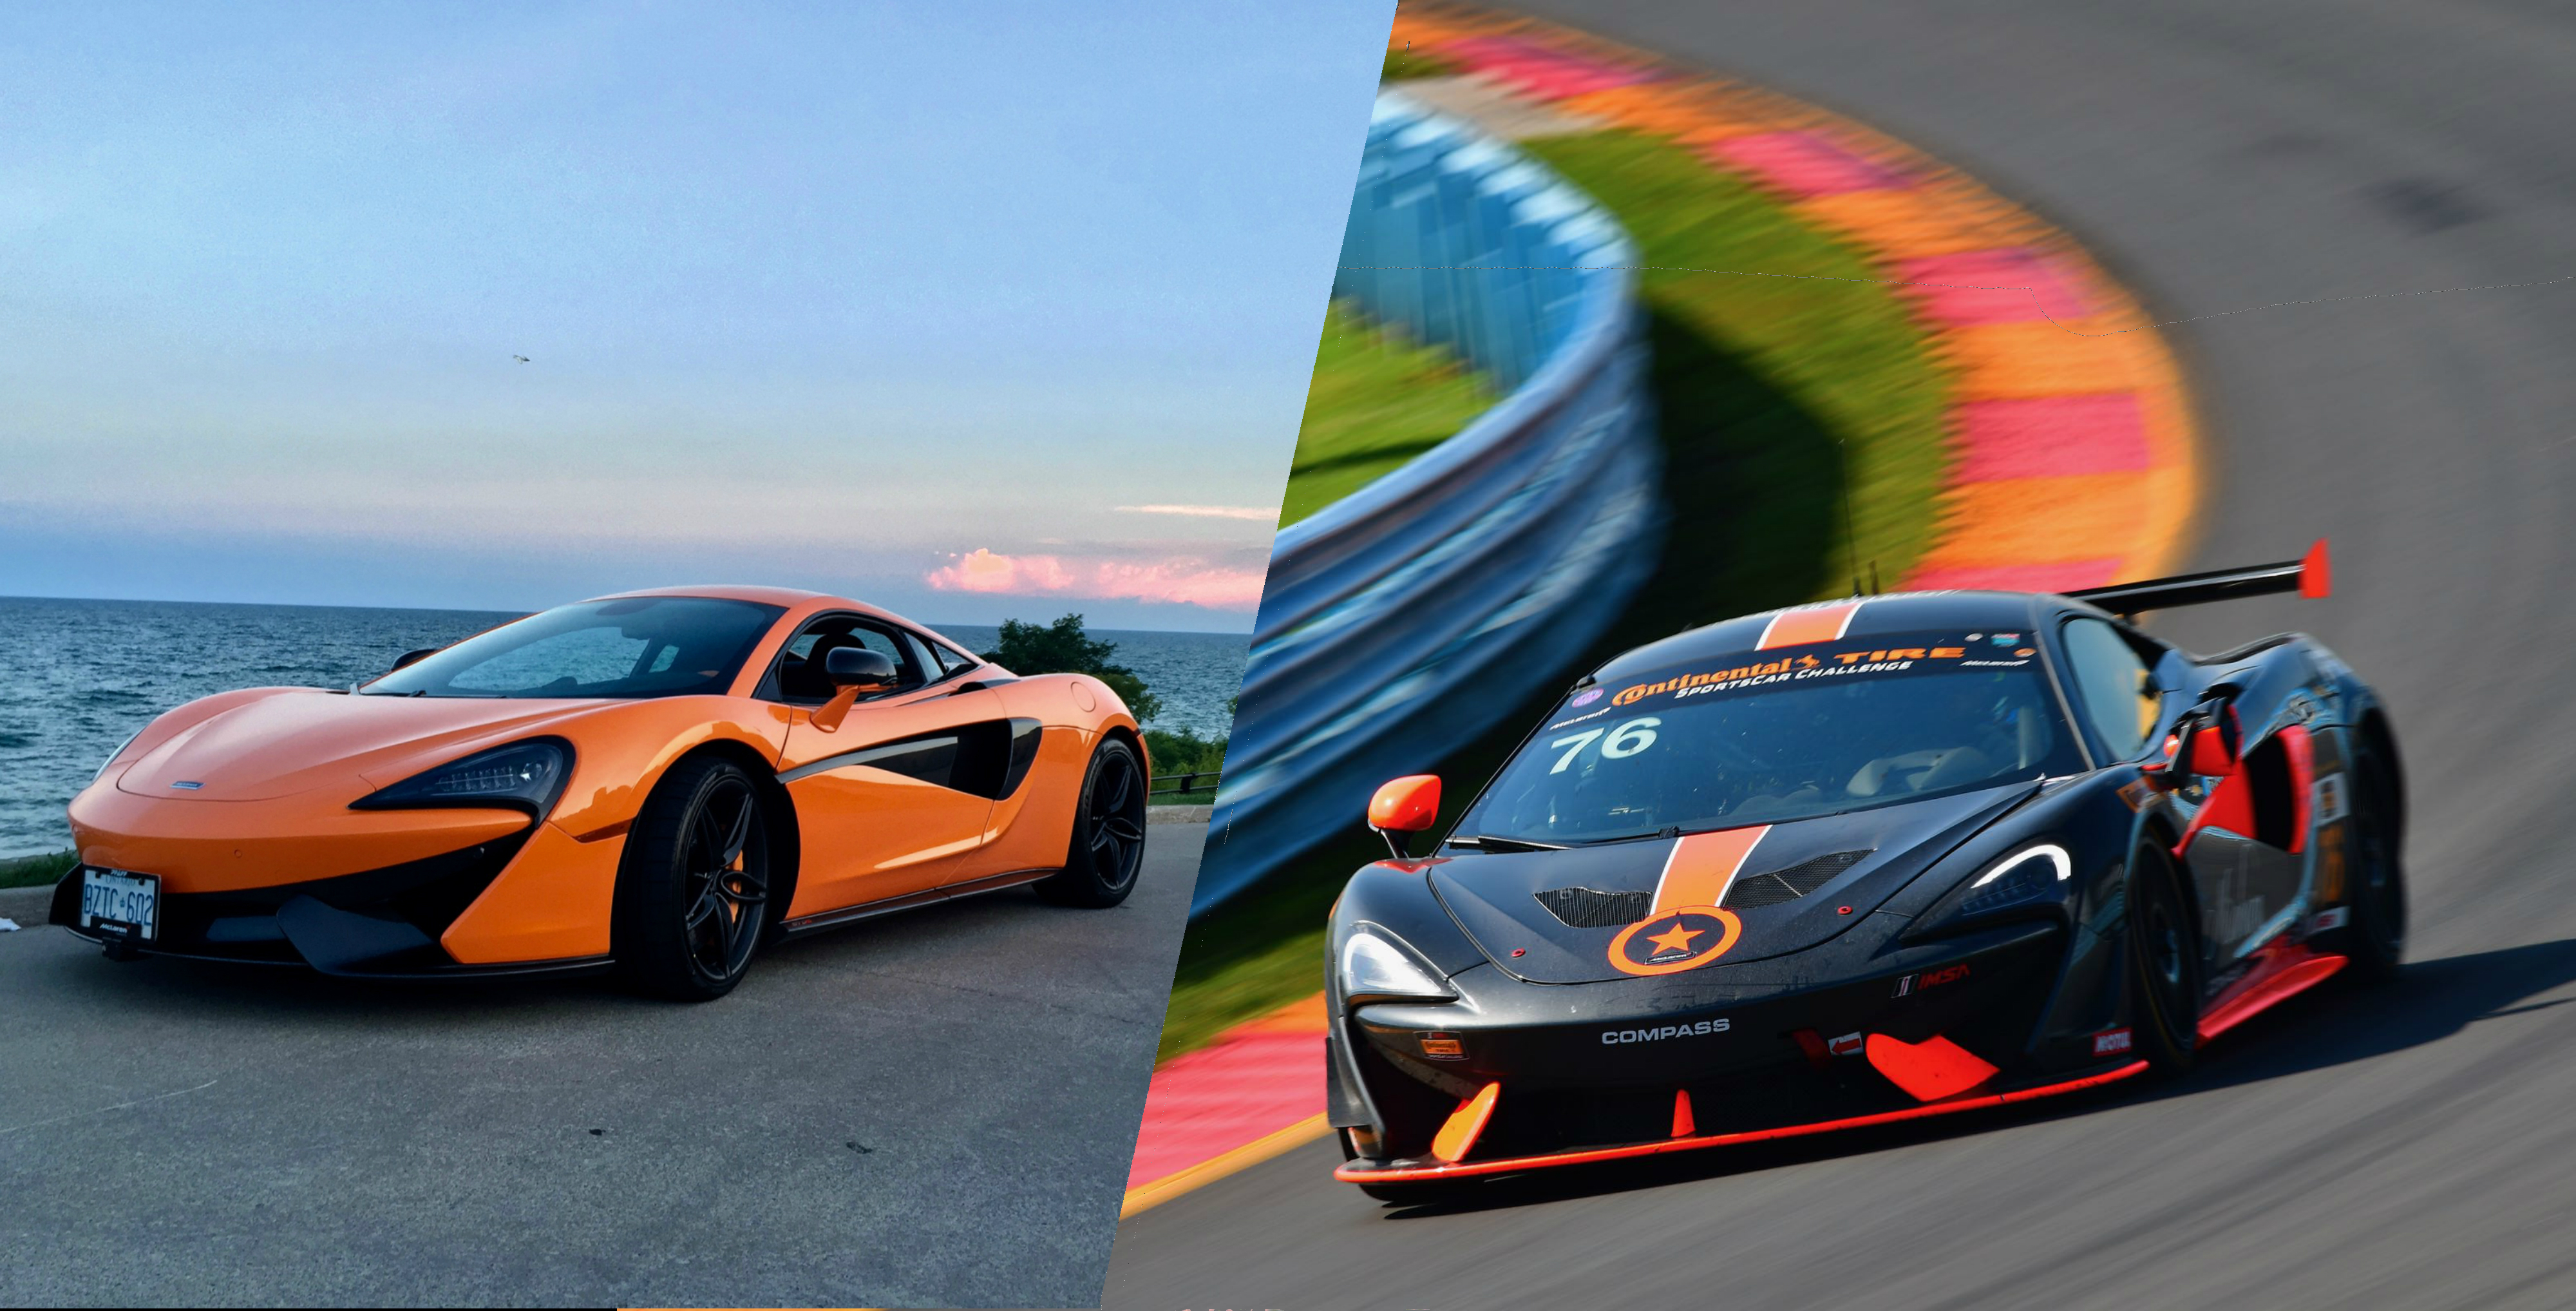 Road Car vs Racecar McLaren 570S vs GT4